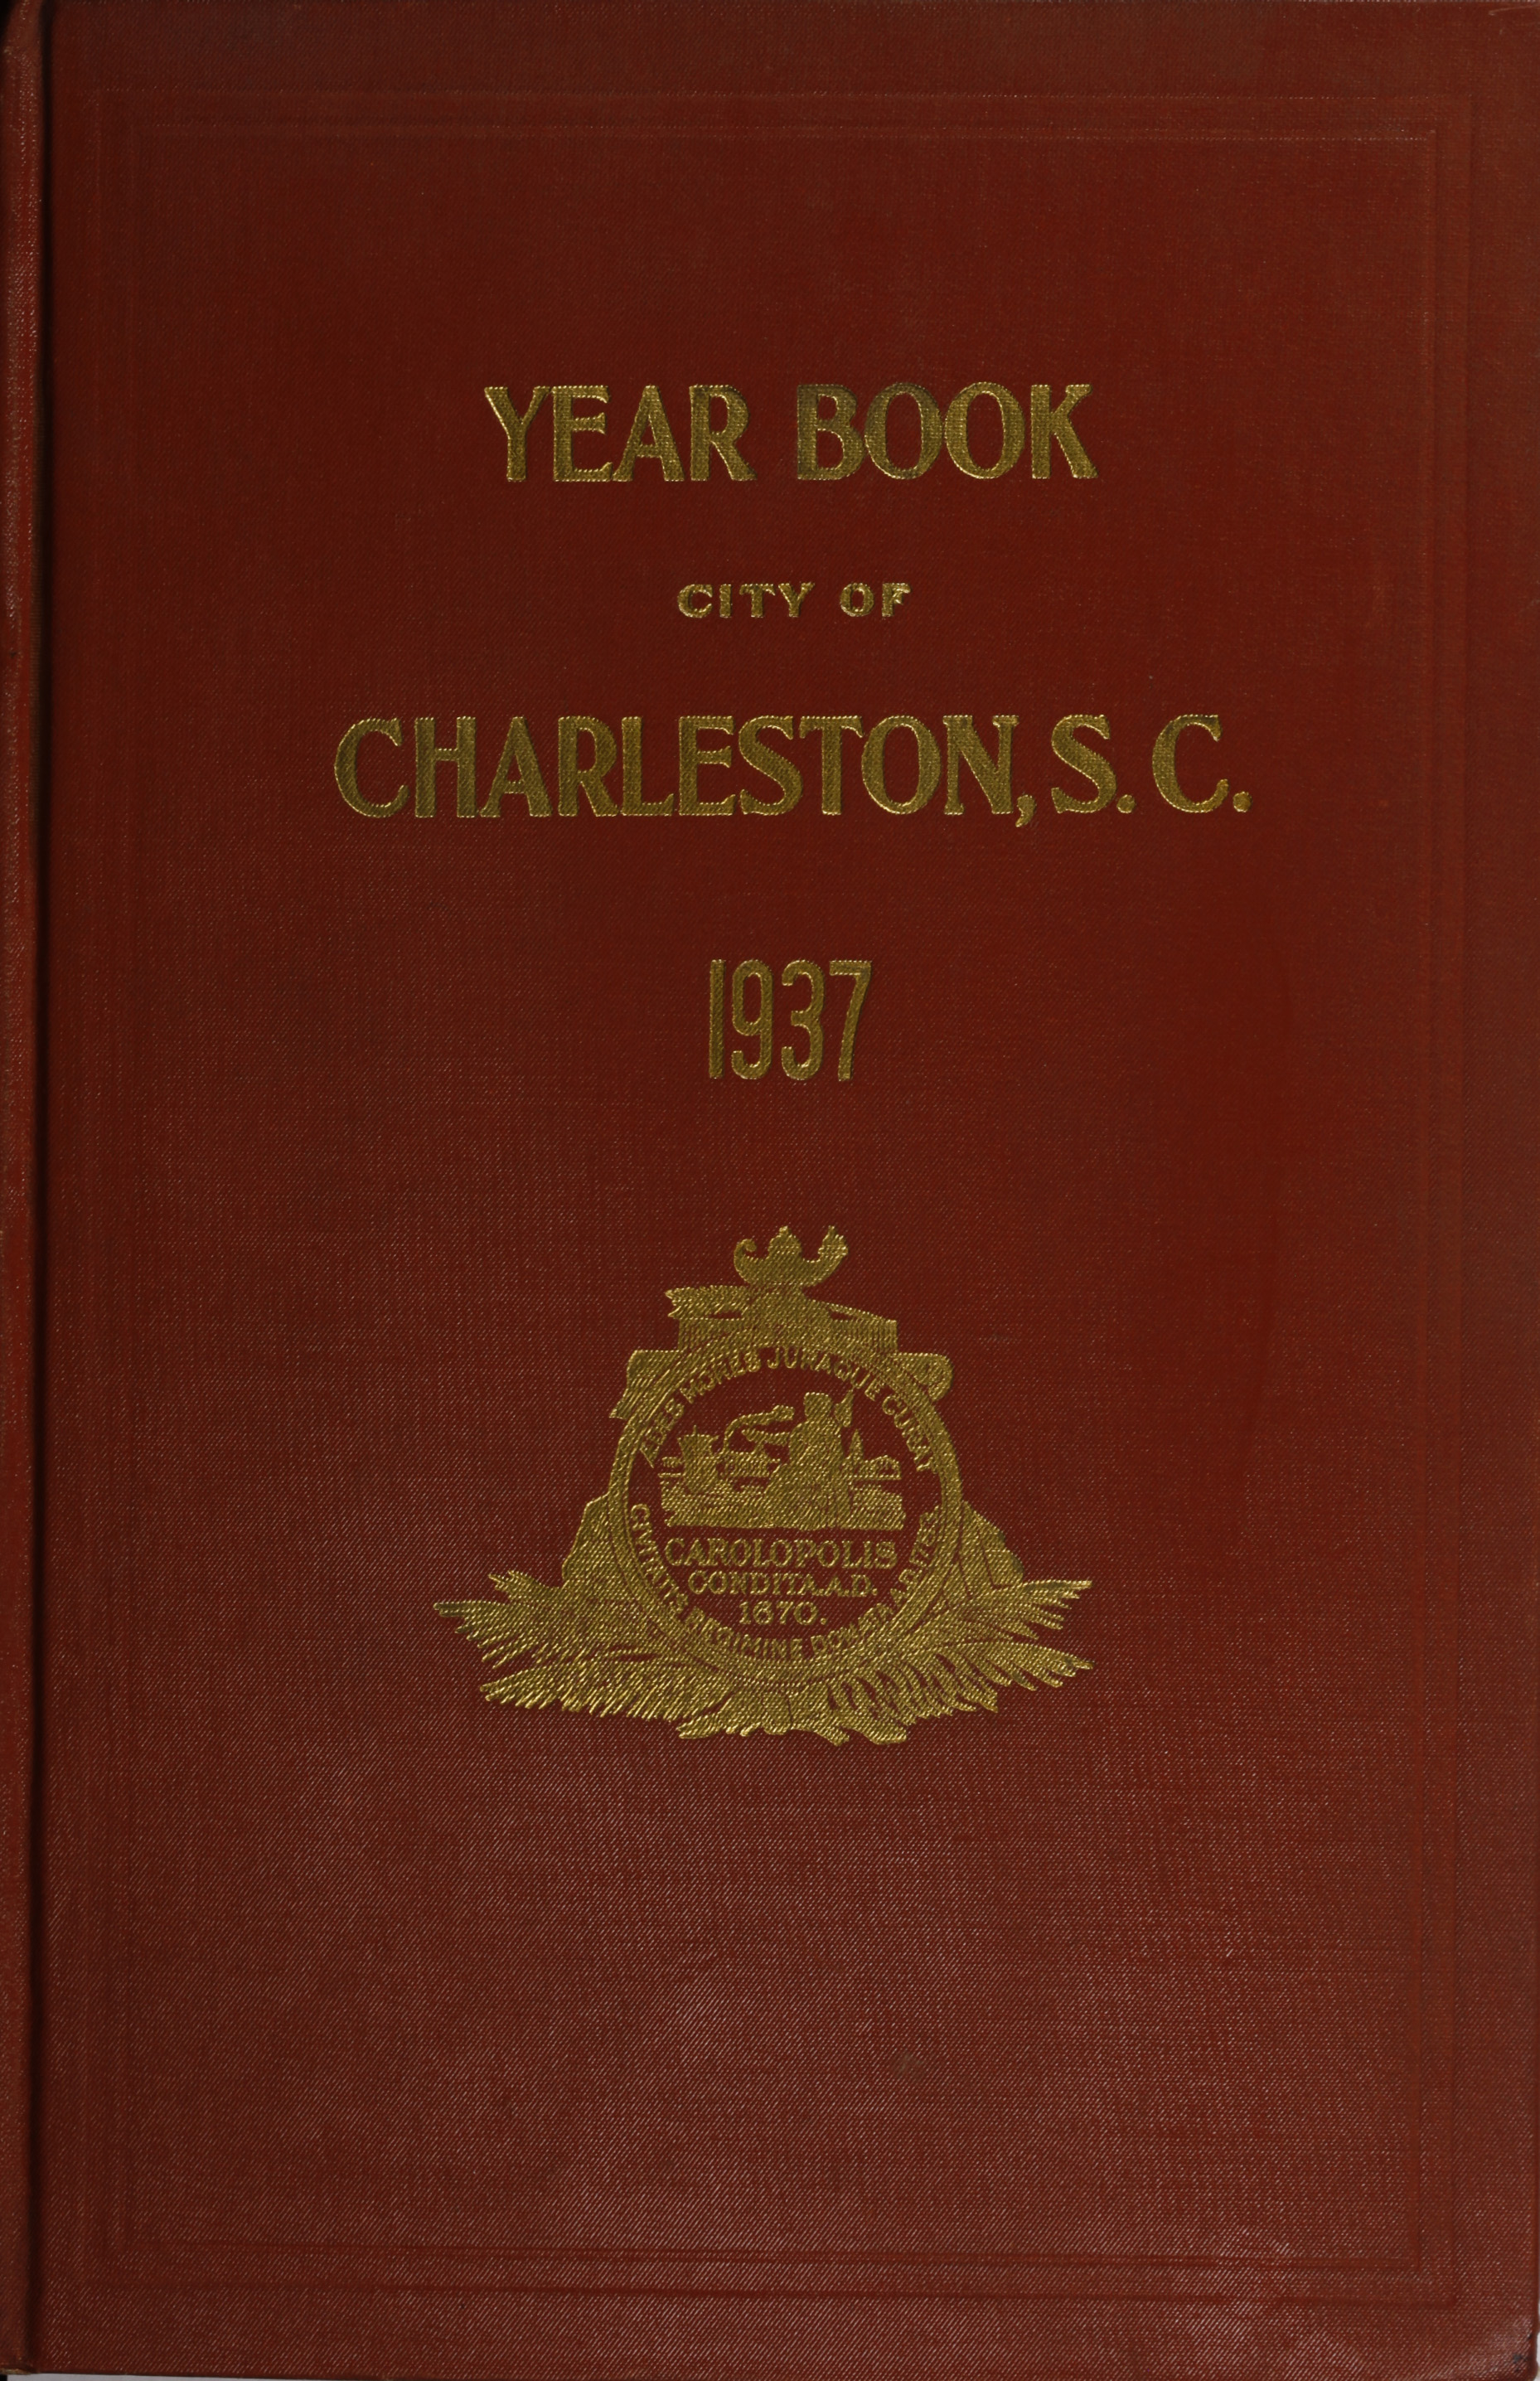 Charleston Yearbook, 1937